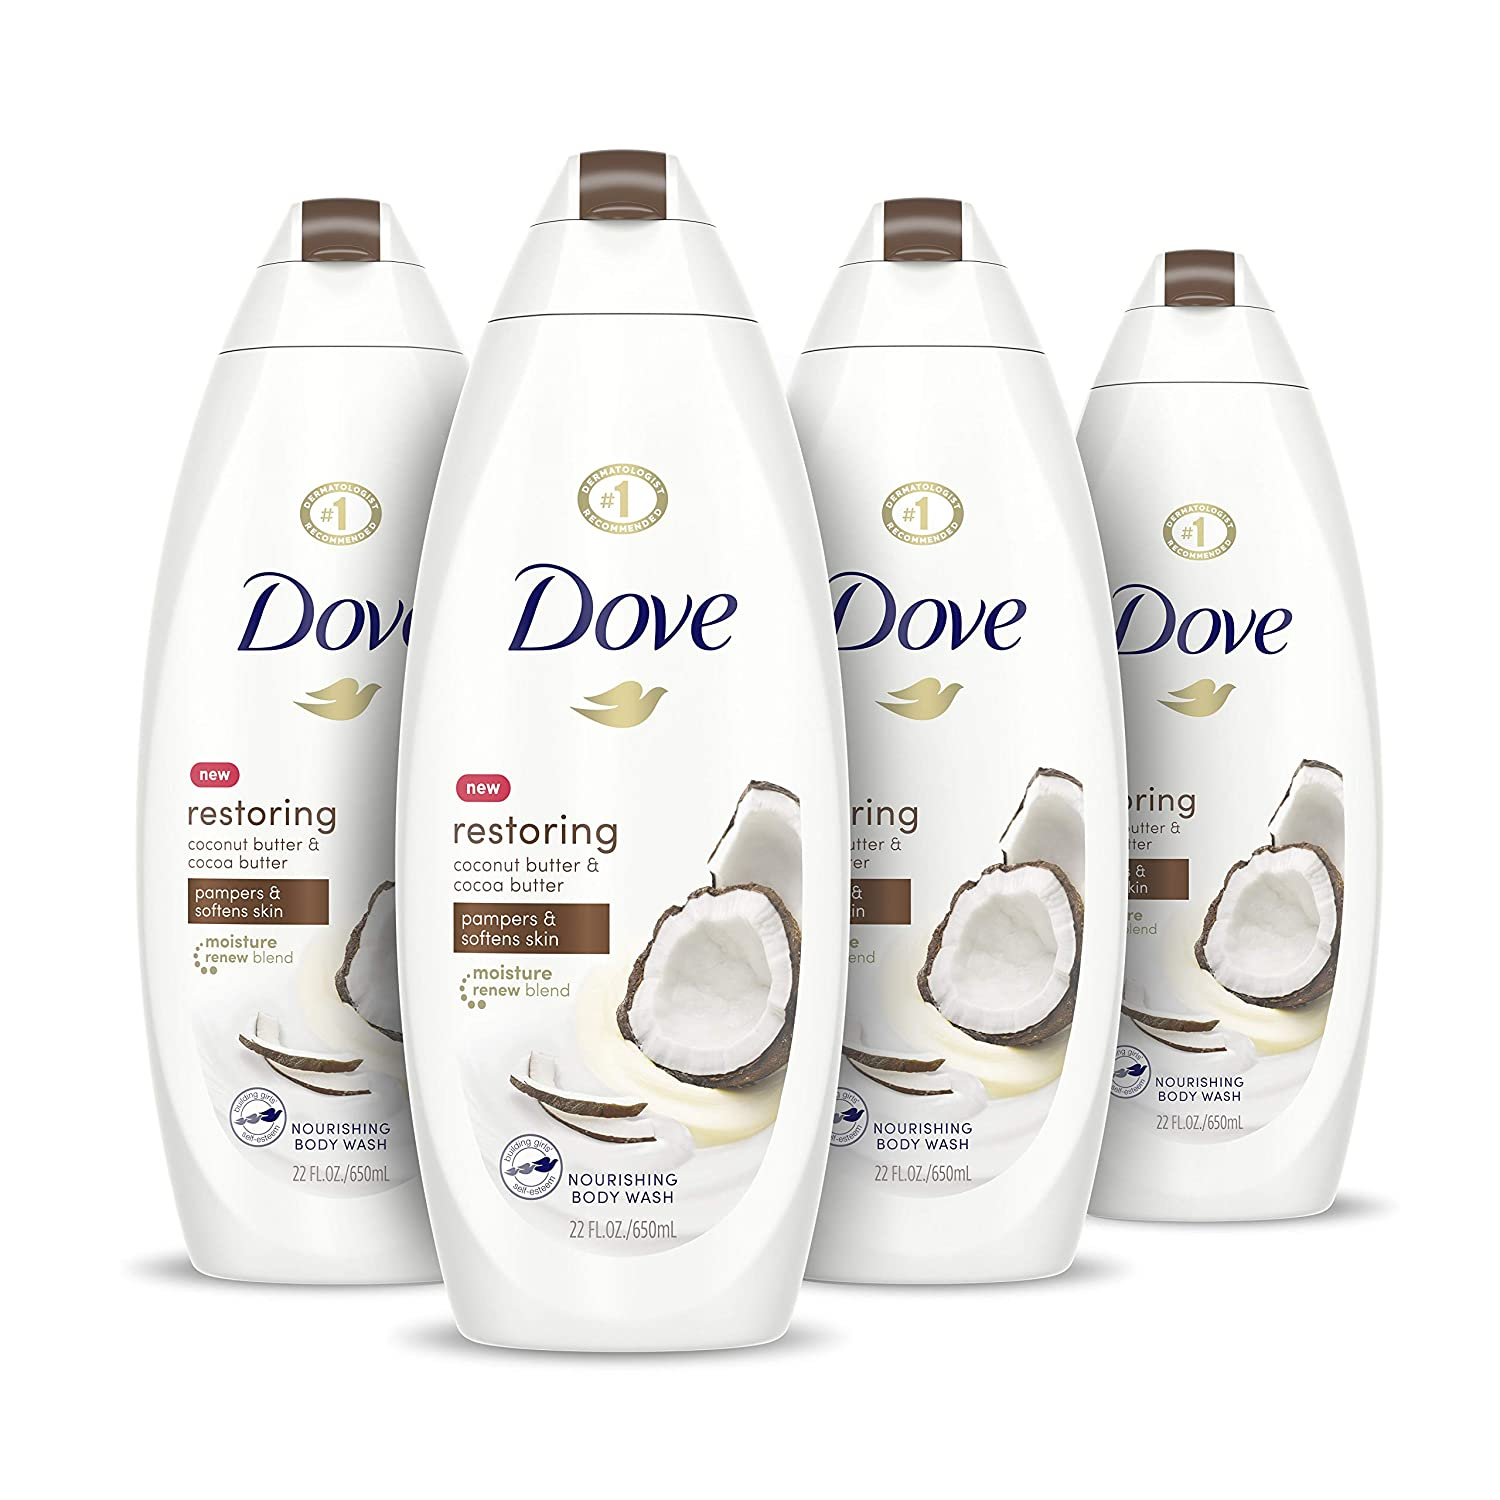 Amazon Com Dove Purely Pampering Body Wash For Dry Skin Coconut Butter And Cocoa Butter Effectively Washes Away Bacteria While Nourishing Your Skin 22 Oz 4 Count Beauty